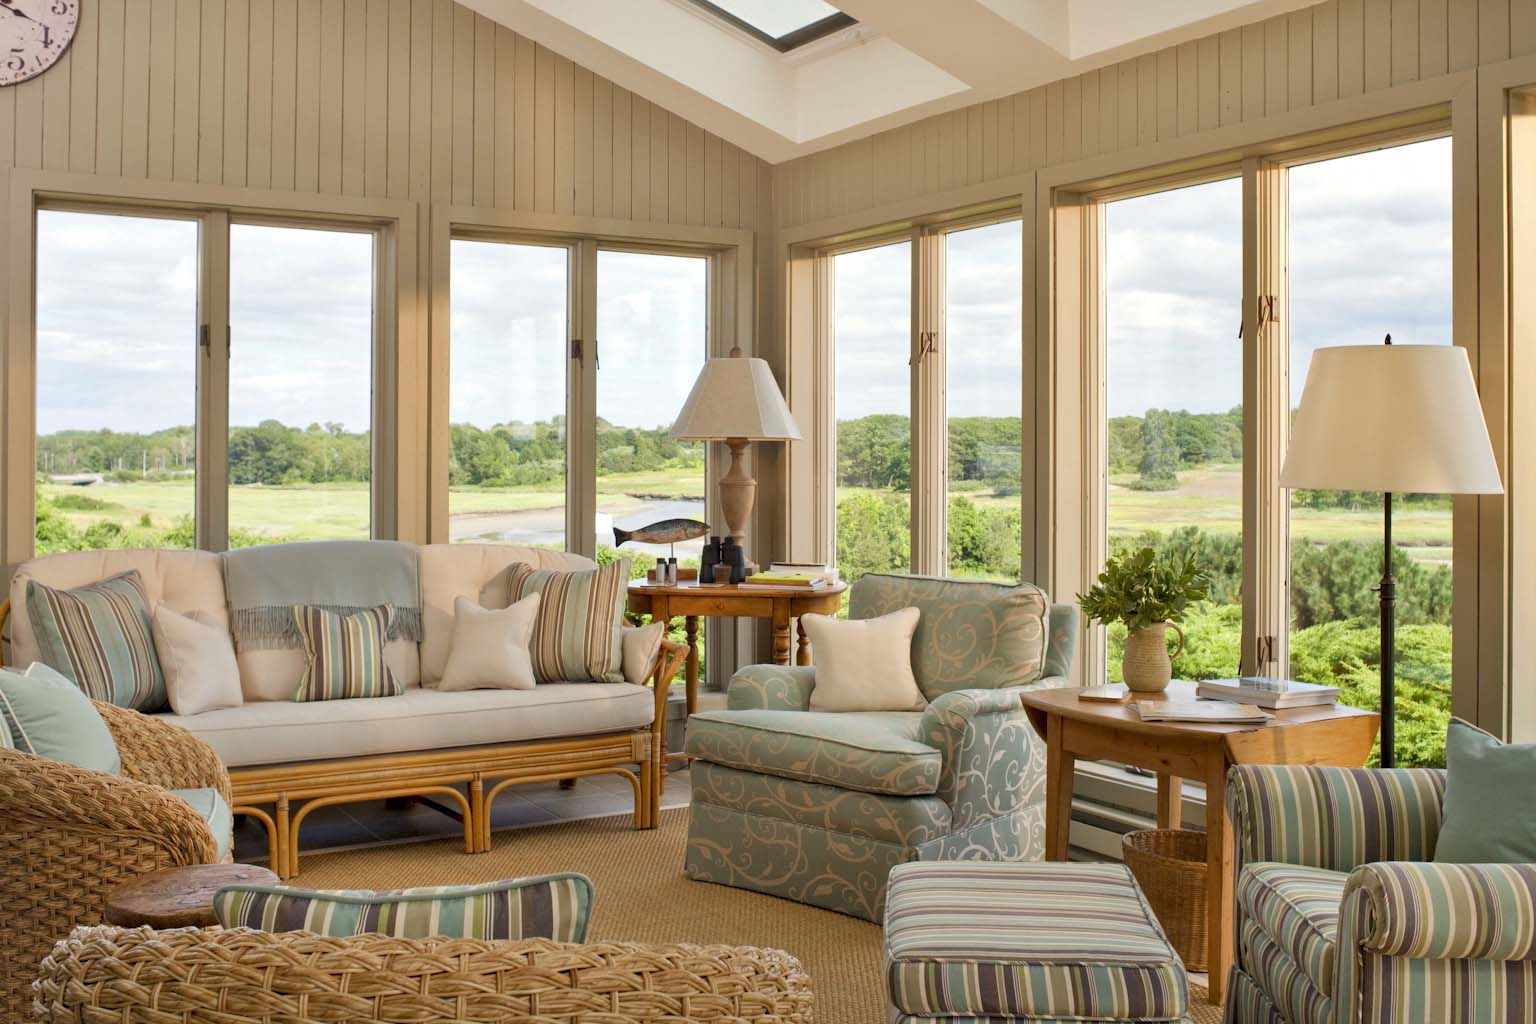 modern sunroom designs. Perfect Designs Sunroom Ideas  Modern Sunroom Design For Your Decorations Ideas  Designs